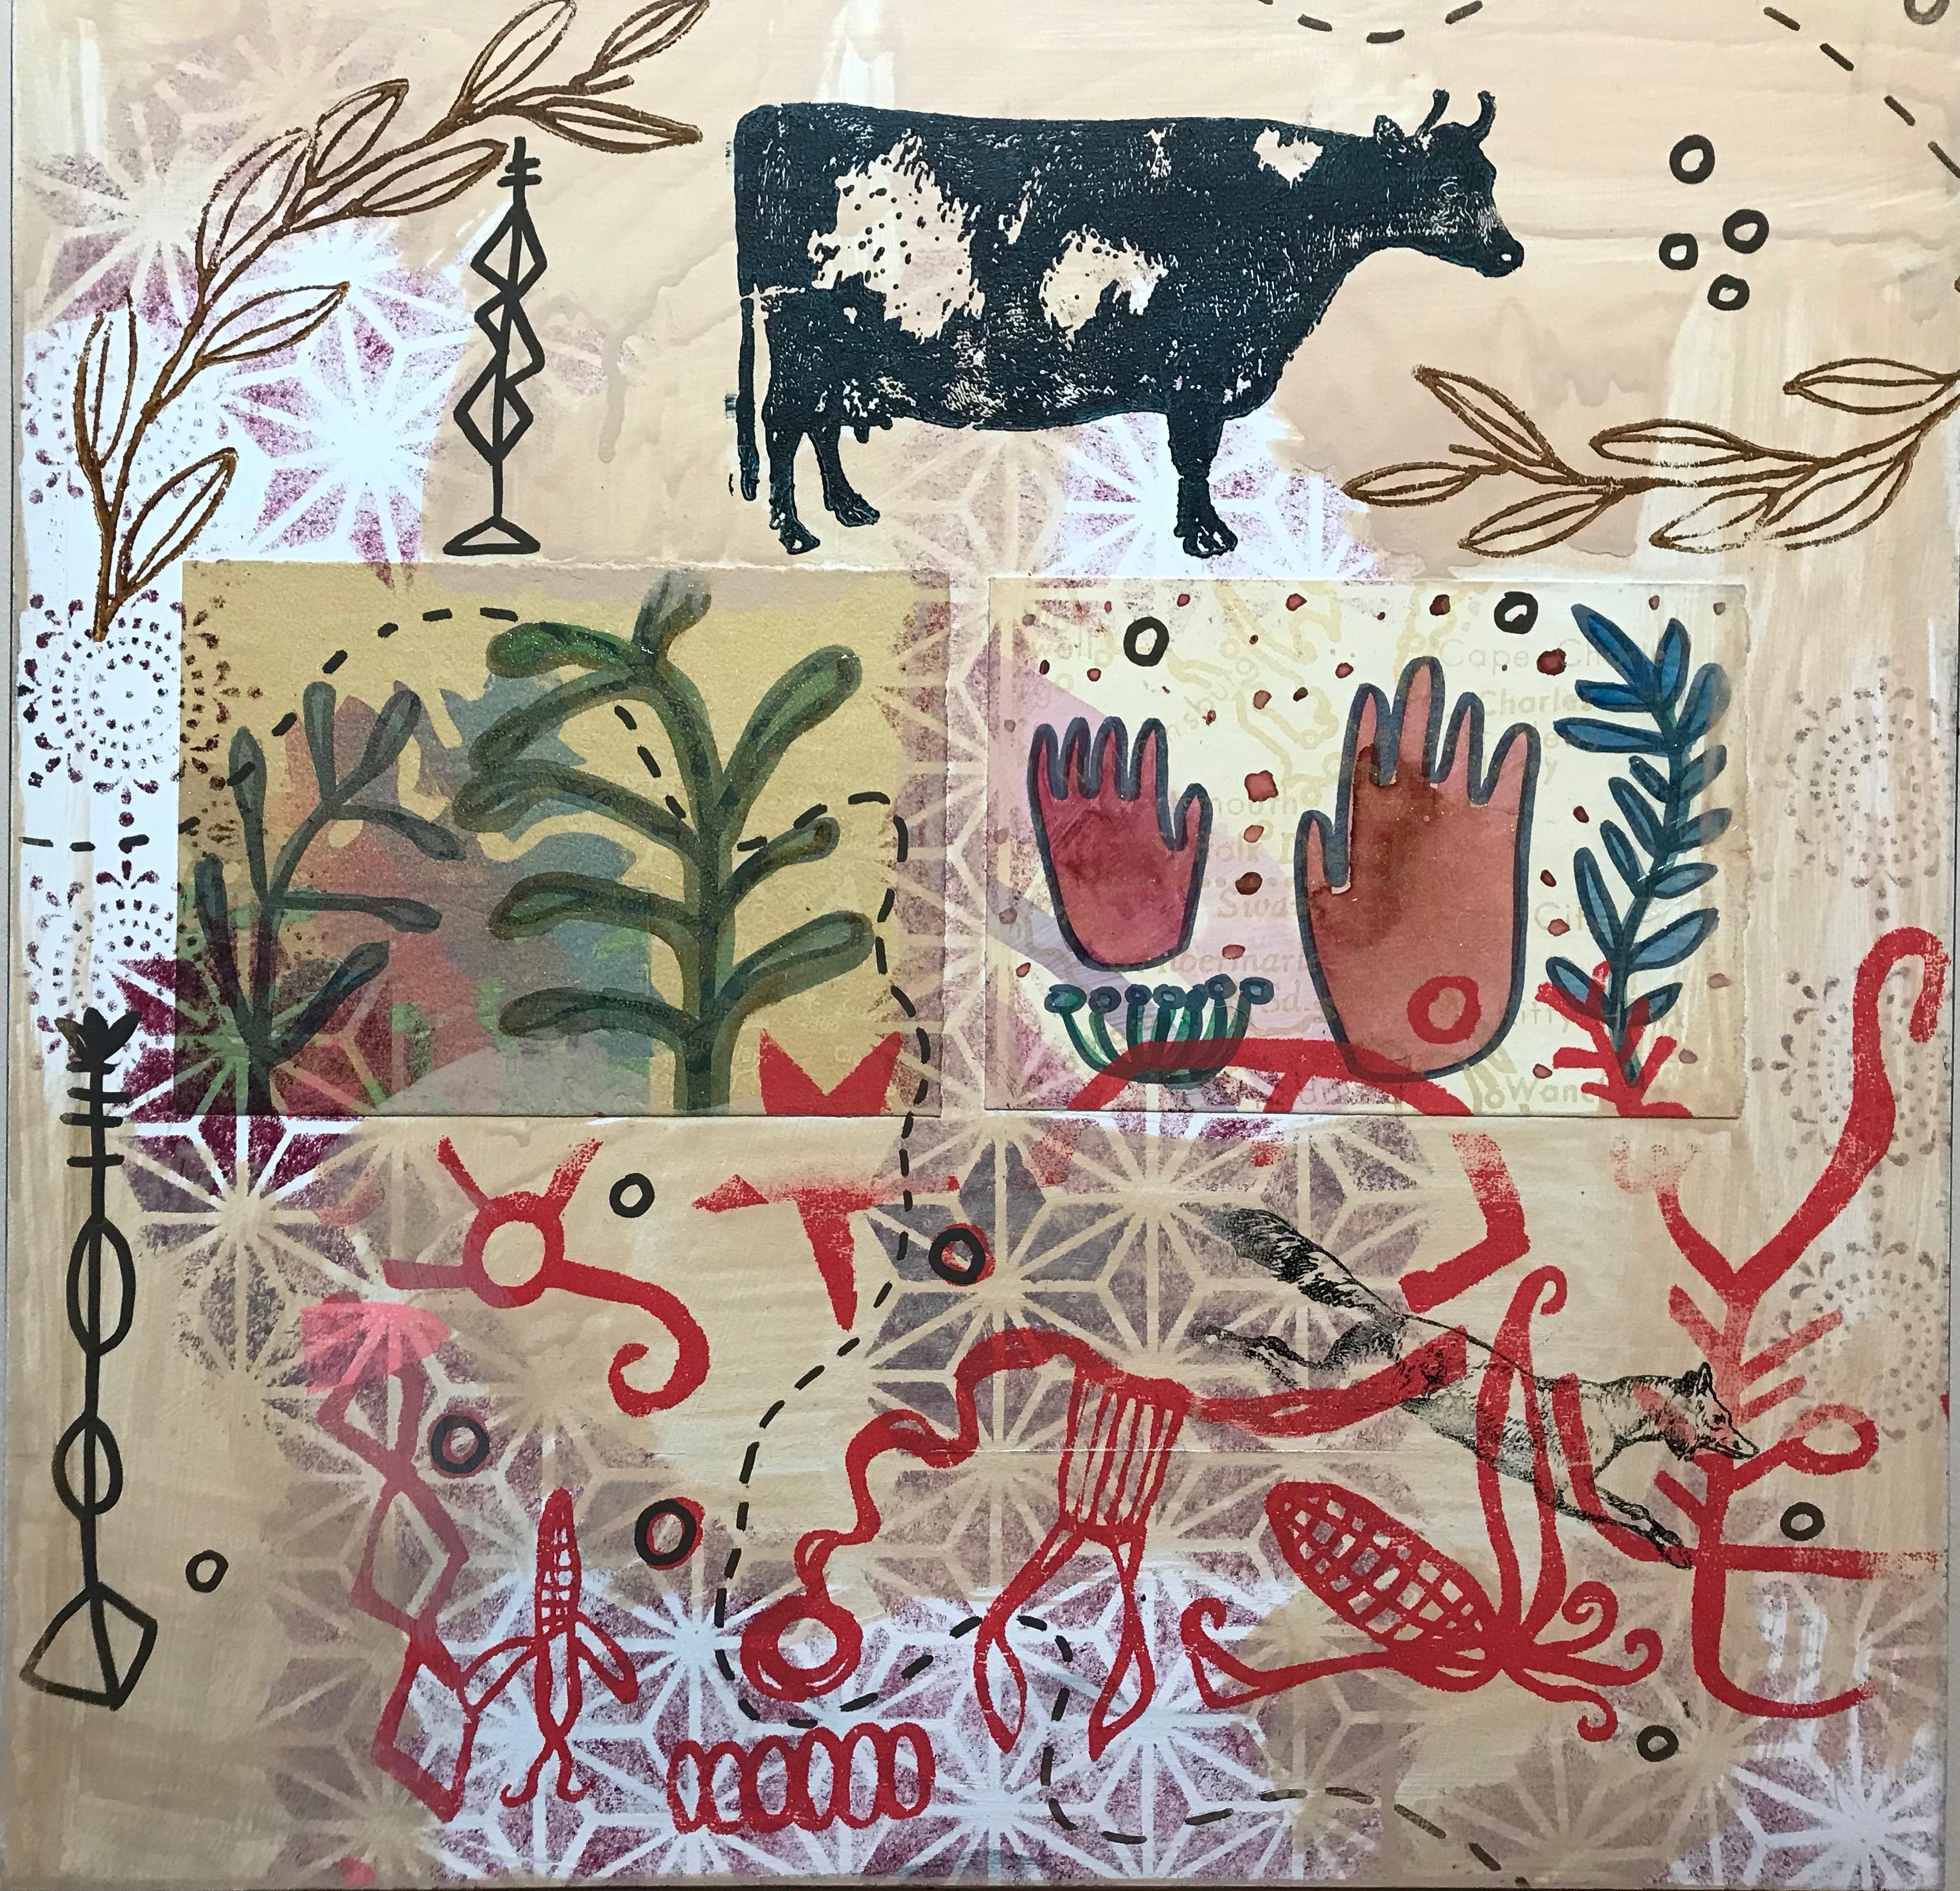 Outside/In, painting by Melanie Yazzie, contemporary, Navajo, cow, plants, hands